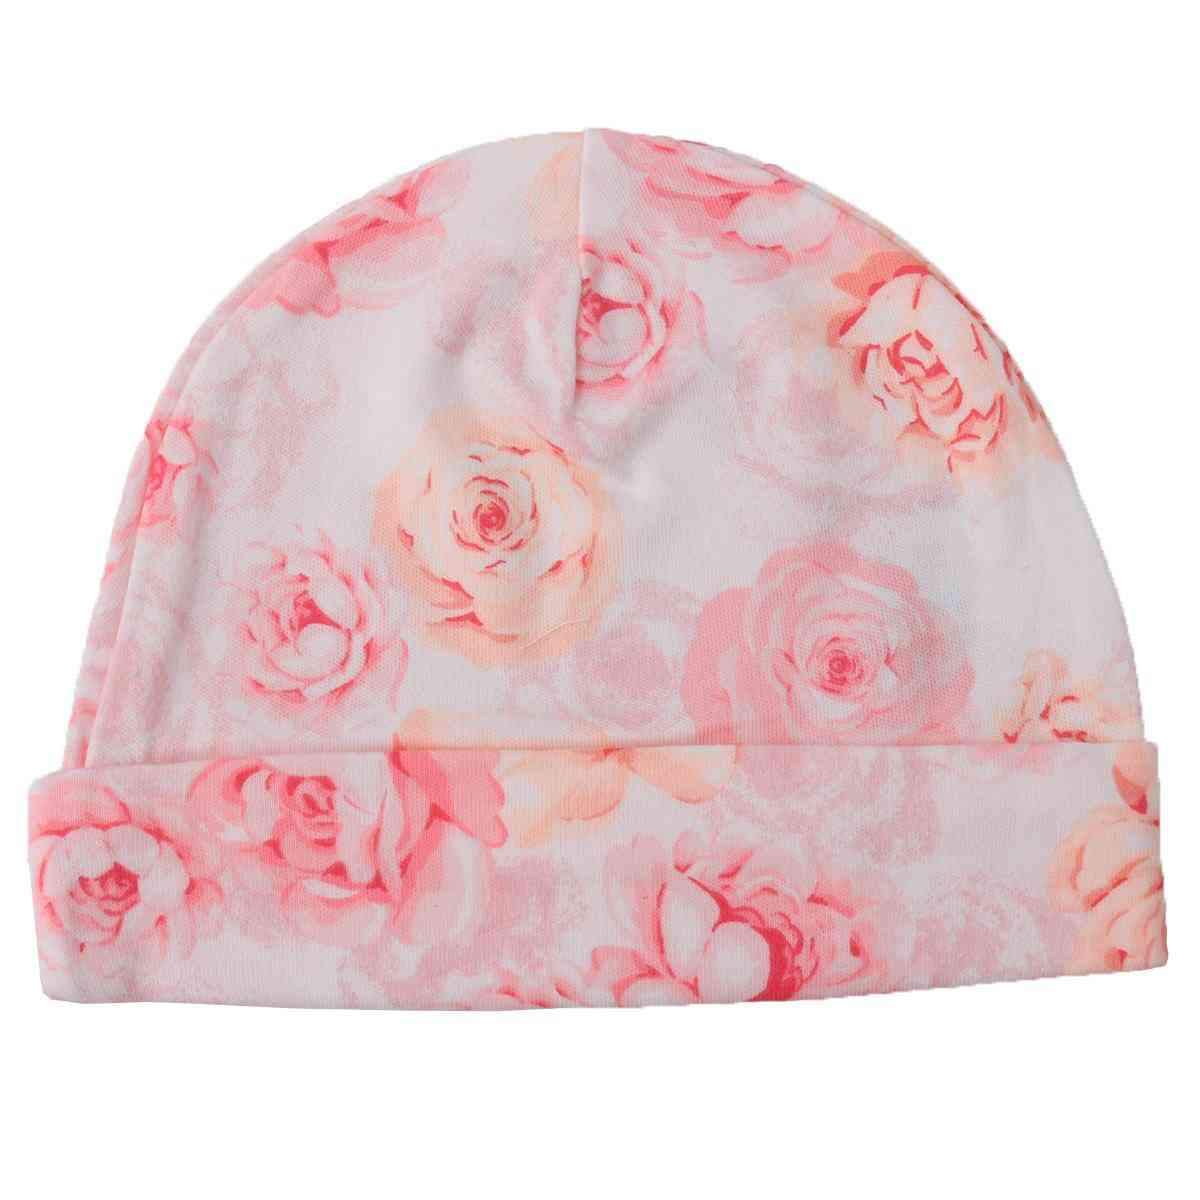 Asaan Bachpan Baby Cap for 0 - 6 Month Baby  Pink with Flowers